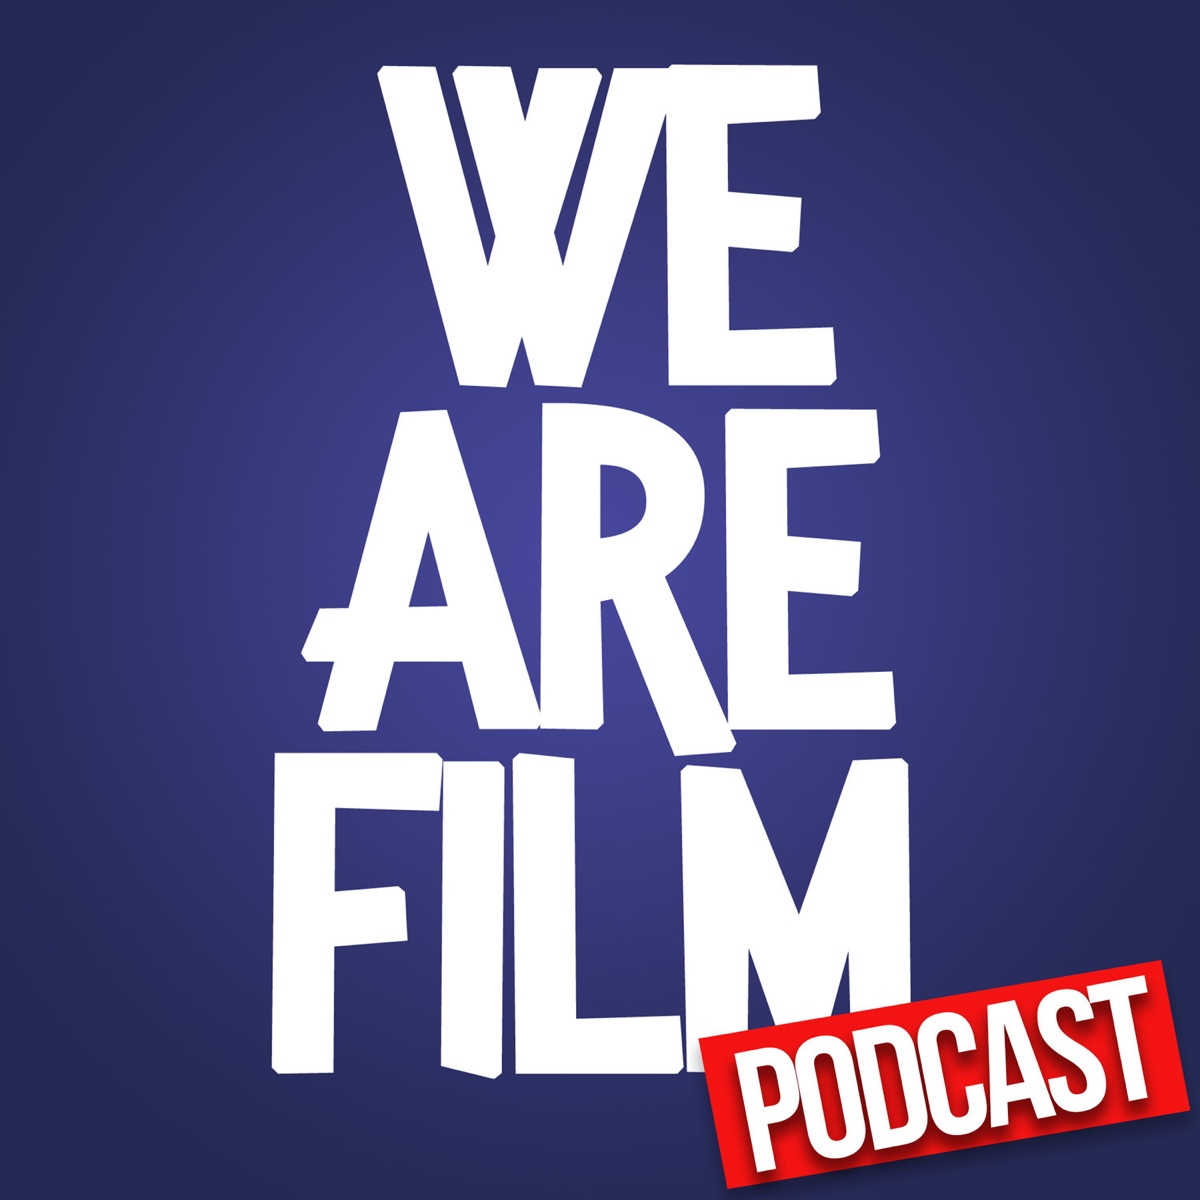 We Are Film Podcast